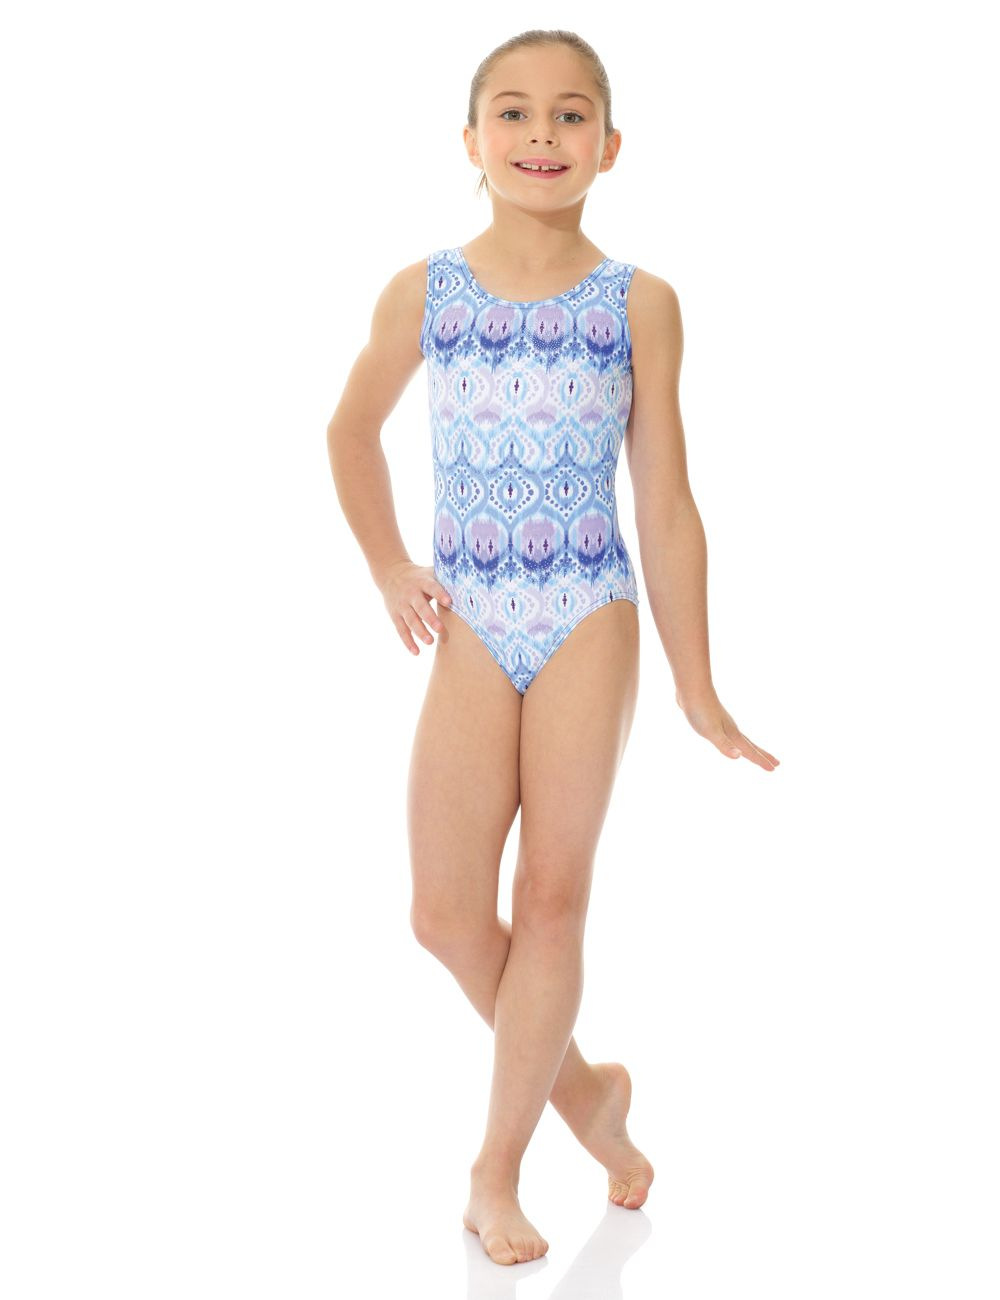 Mondor Print Tank Gymnastics Leotard with matching scrunchie- 7822